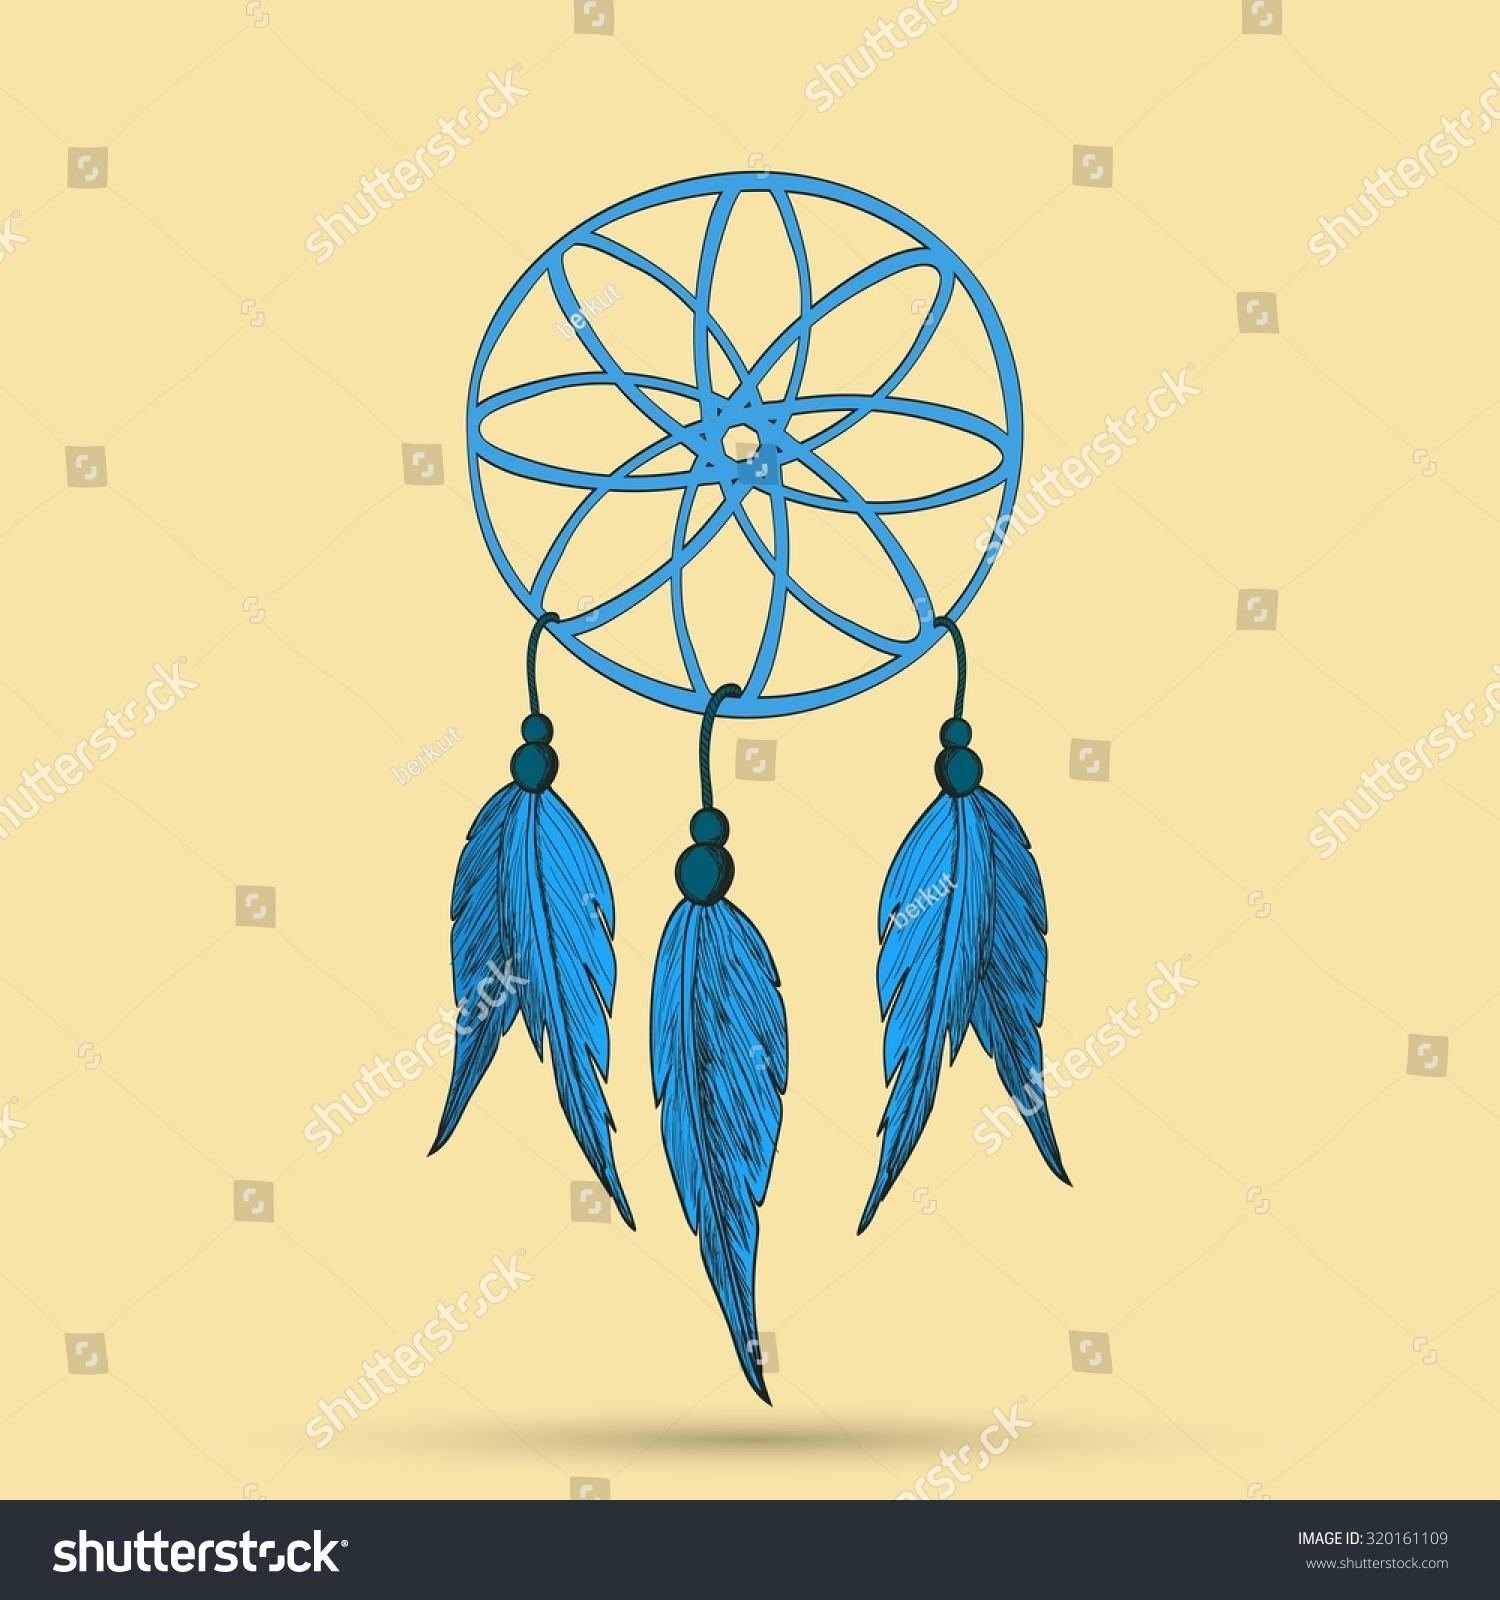 Dreamcatcher Feathers Beads Native American Indian Stock ...